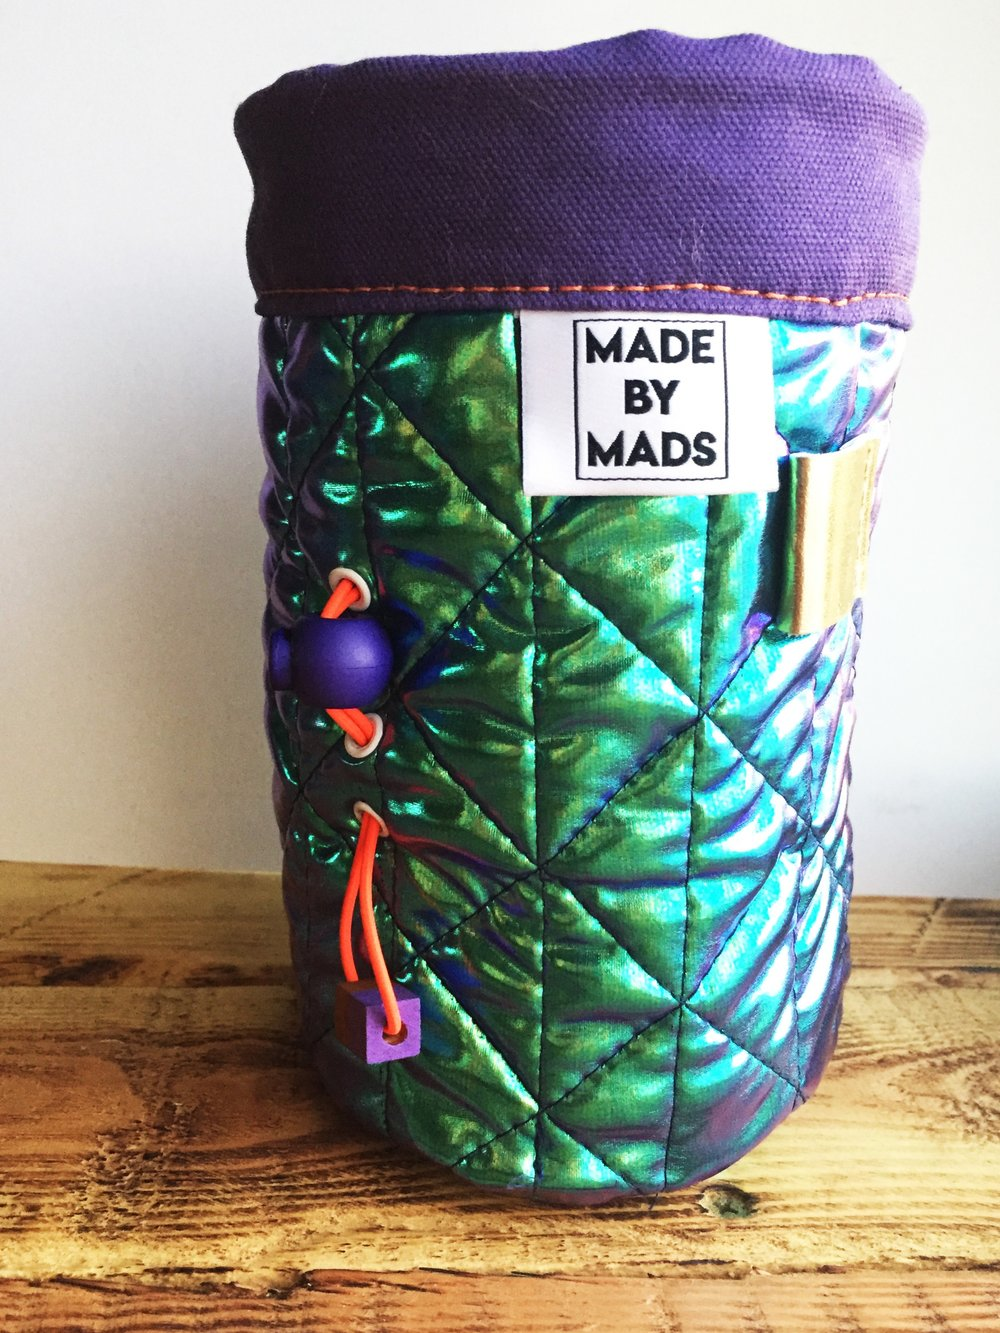 Bowie - Chalk Bag - The Bowie Chalk bag metallic quilting technique, will empower you with rad betta. She's got your back - included with a brush holder, a faux fur cheetah interior, as well as, a one hand synching system to allow you to keep one hand on the rock.$30.00Interested in buying? Contact Madison at madisondheim@gmail.com for inquiries!